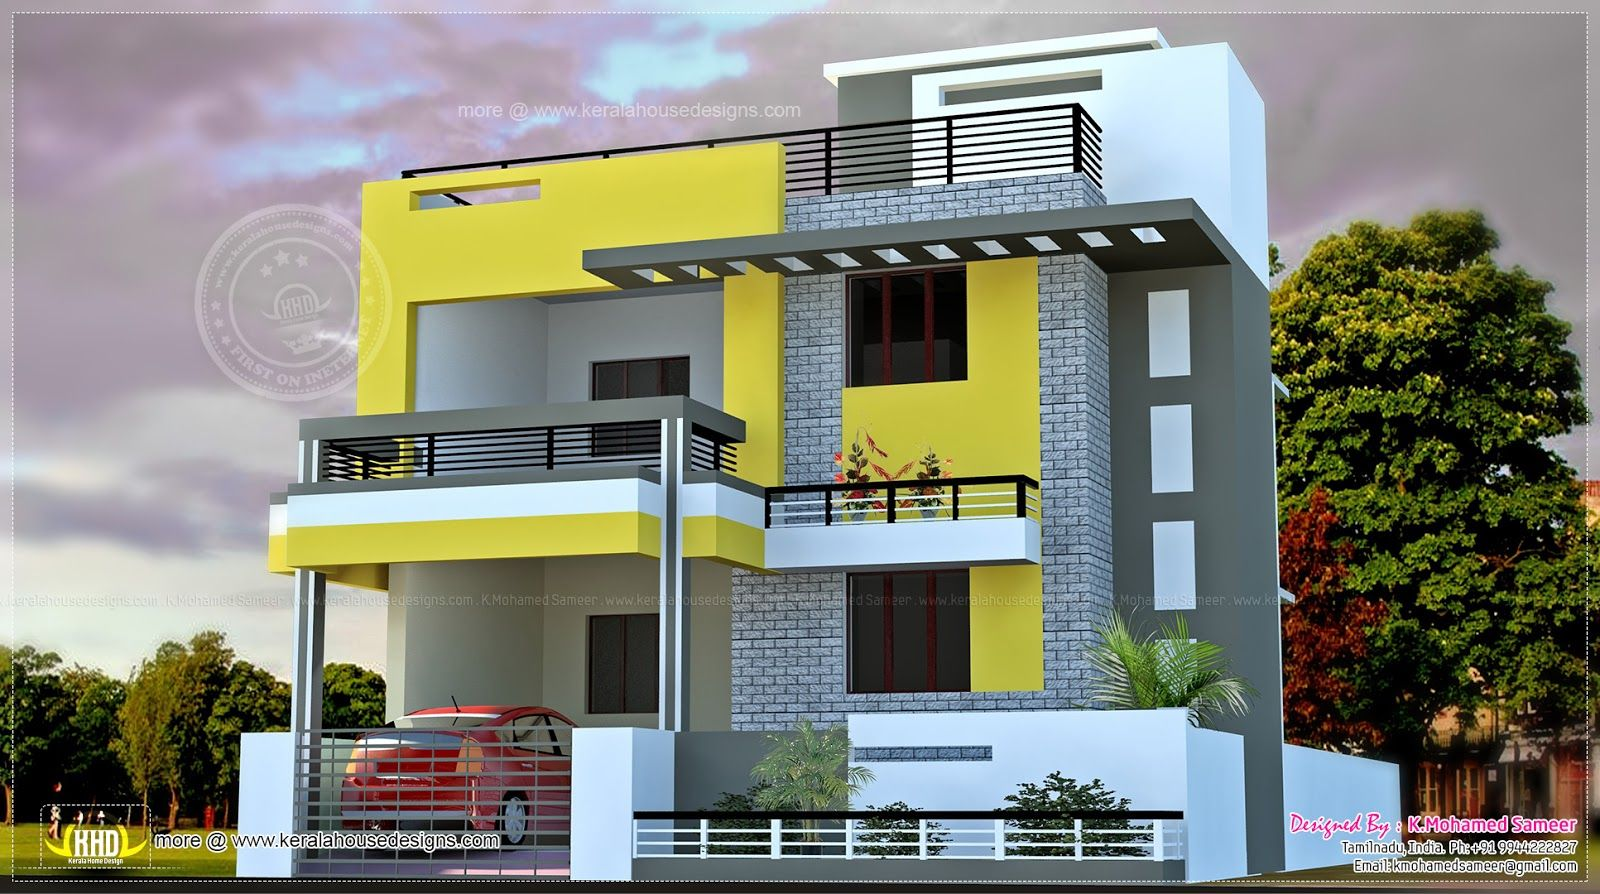 55ec707a3a4511e8a50dfa33fc1be75f elevations of residential buildings in indian photo gallery on latest exterior house designs in indian - Home Design In India